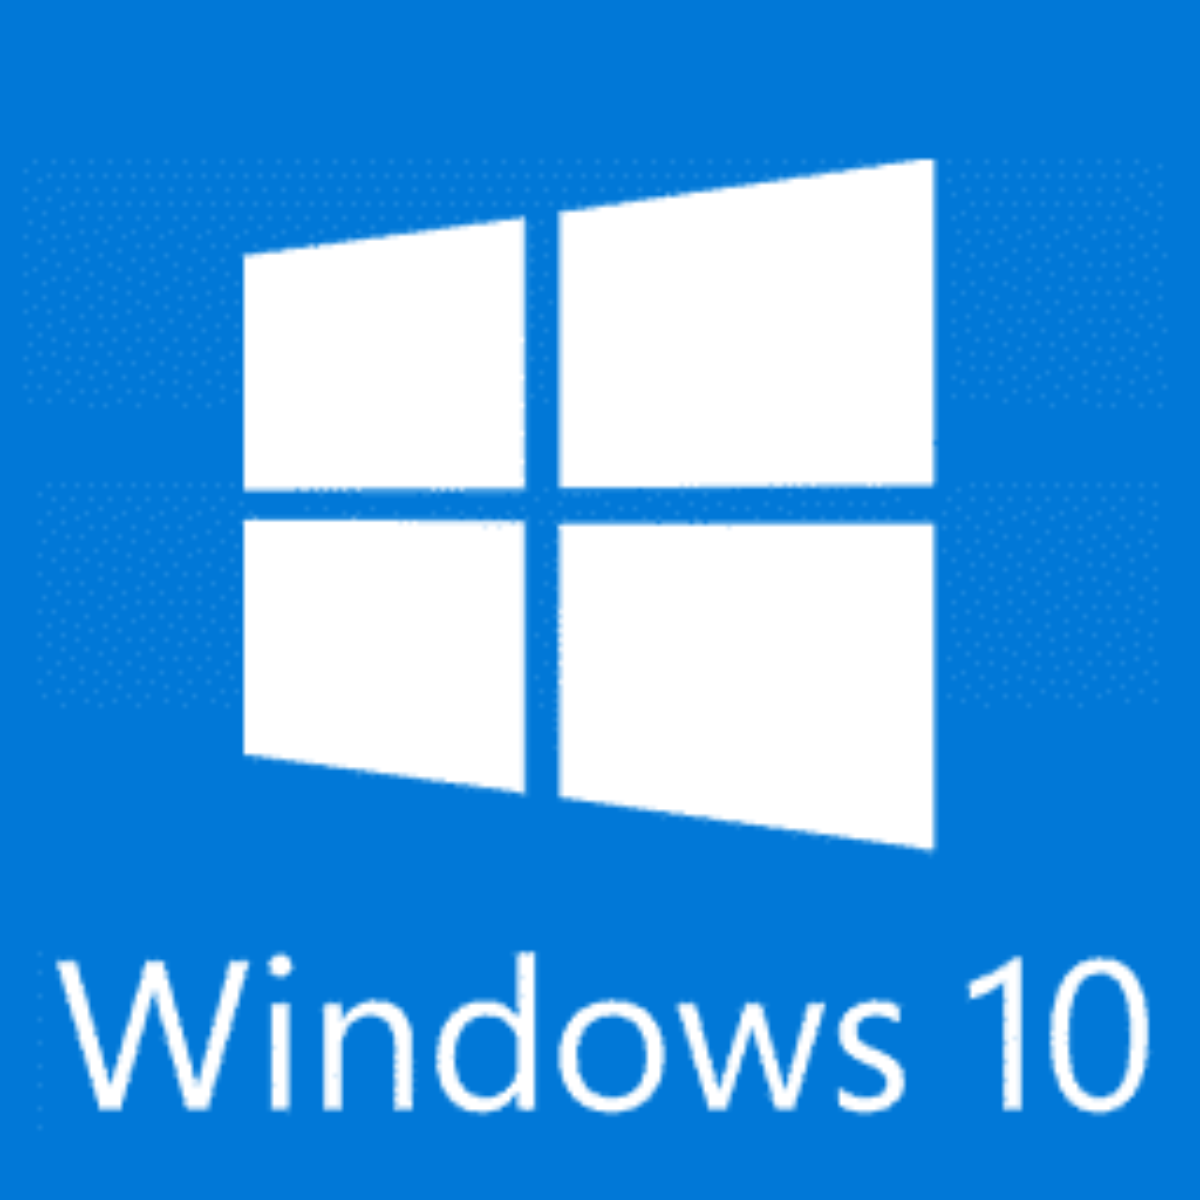 Windows 10 Pro Free Download Iso File Full Version For Pc 32 64 Bit